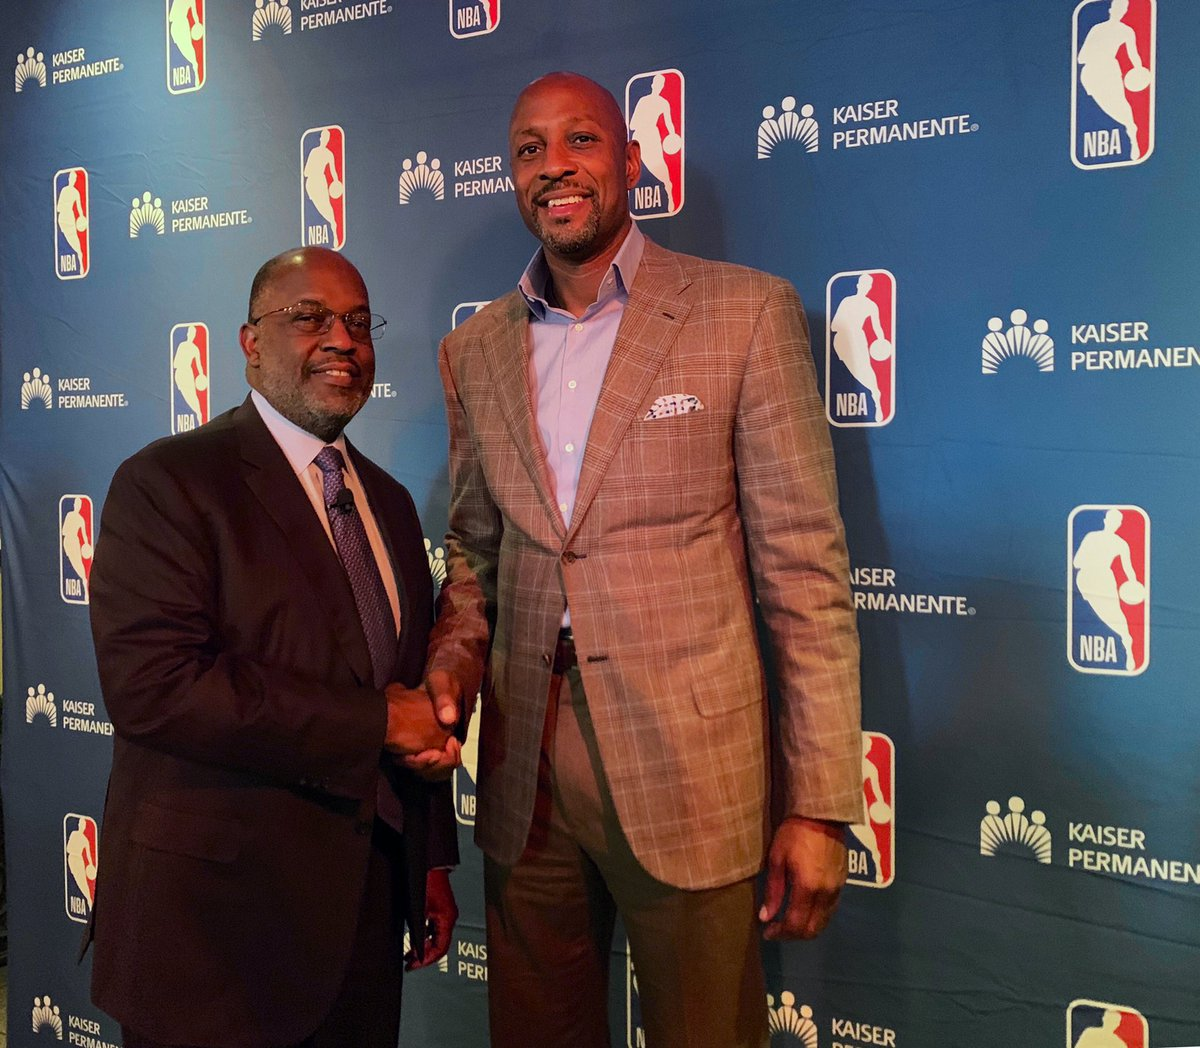 Excellent conversation with NBA Hall of Famer Alonzo Mourning on addressing #mentalhealth and working to make communities strong through education so we can all live a healthier life. Looking forward to a great event at our #TotalHealthForum.